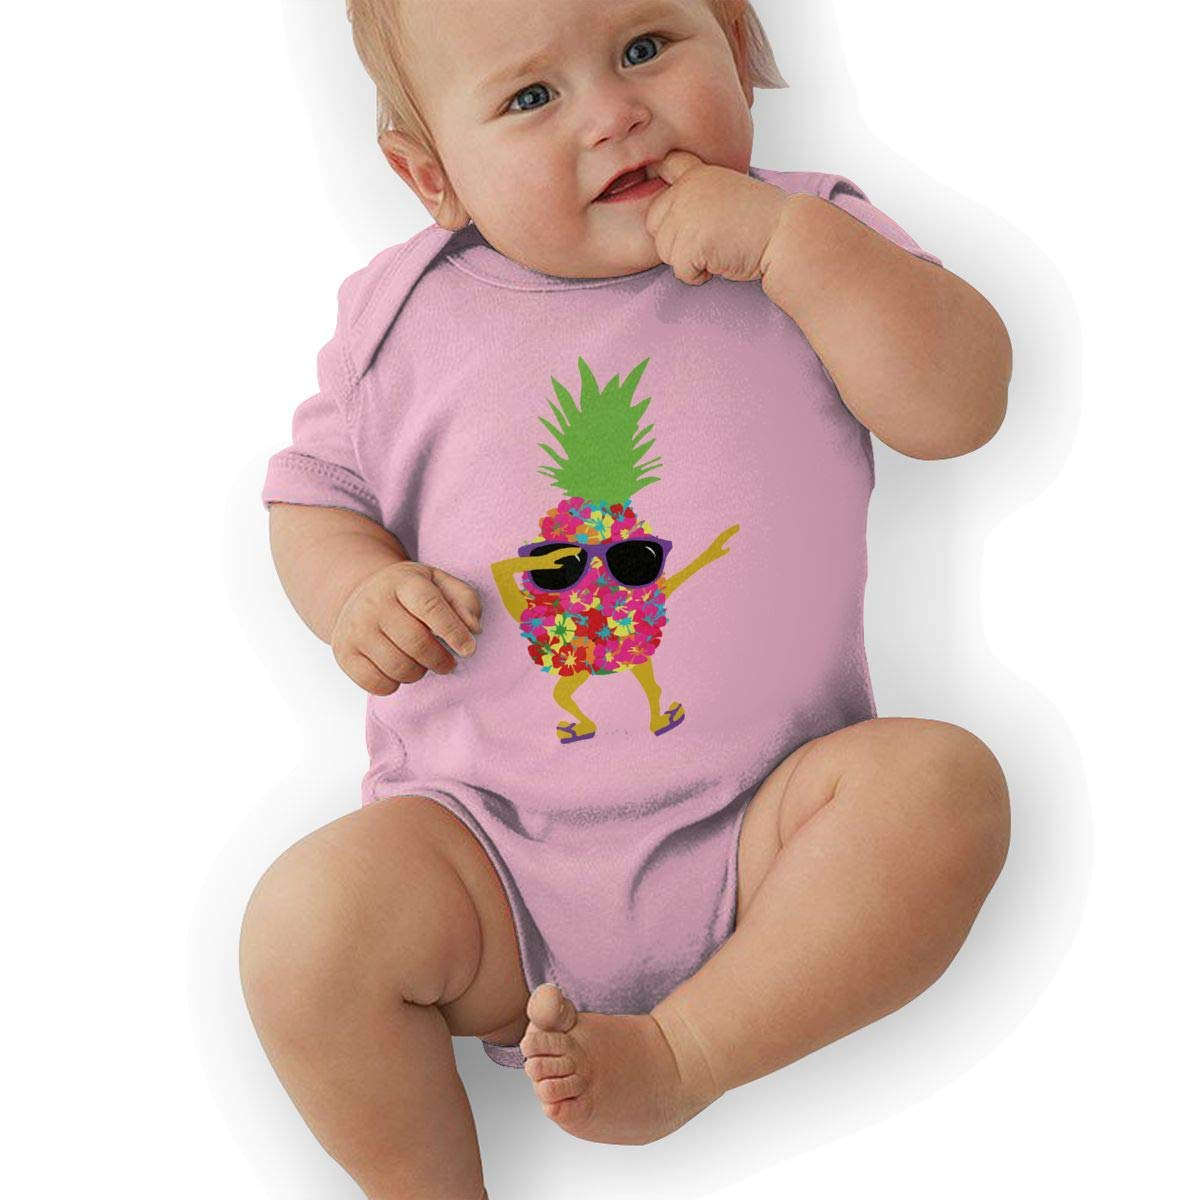 BONLOR Dabbing Cool Sunglasses Pineapple Baby Rompers One Piece Jumpsuits Summer Outfits Clothes Pink